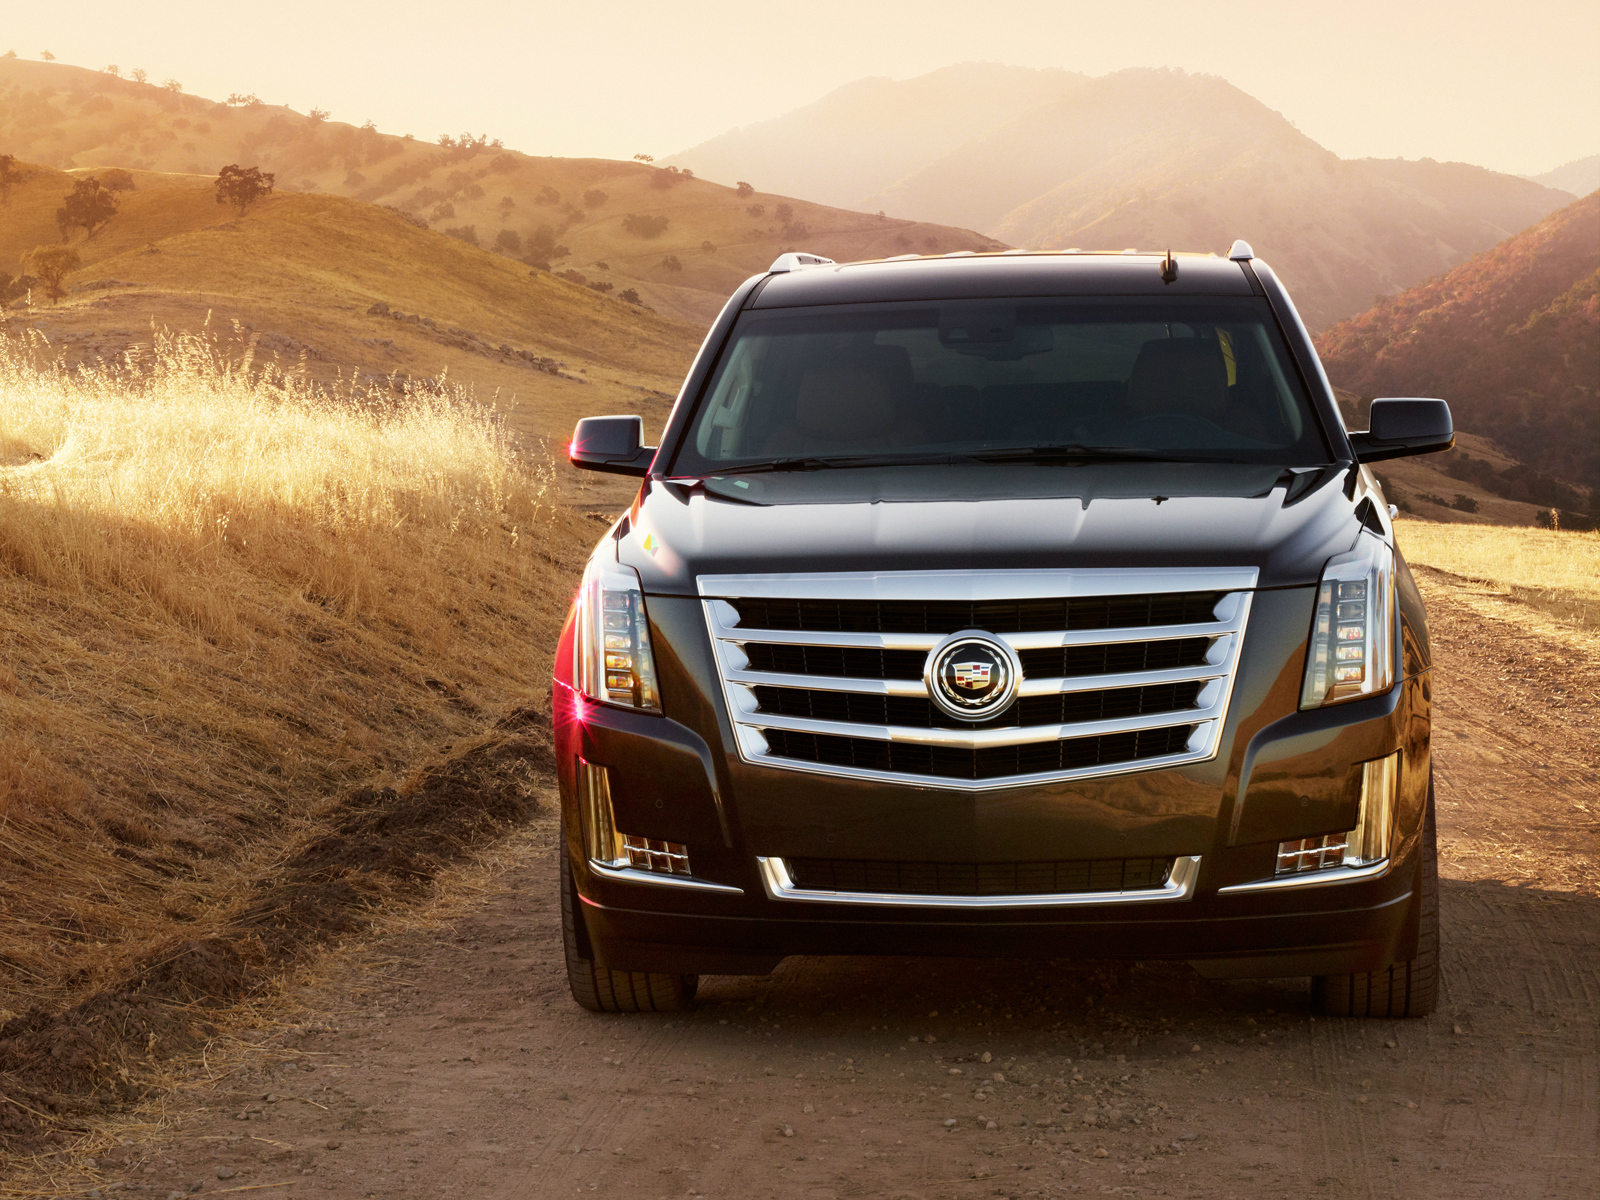 2015 cadillac escalade suv luxury d wallpaper 1600x1200 159378 wallpaperup. Black Bedroom Furniture Sets. Home Design Ideas